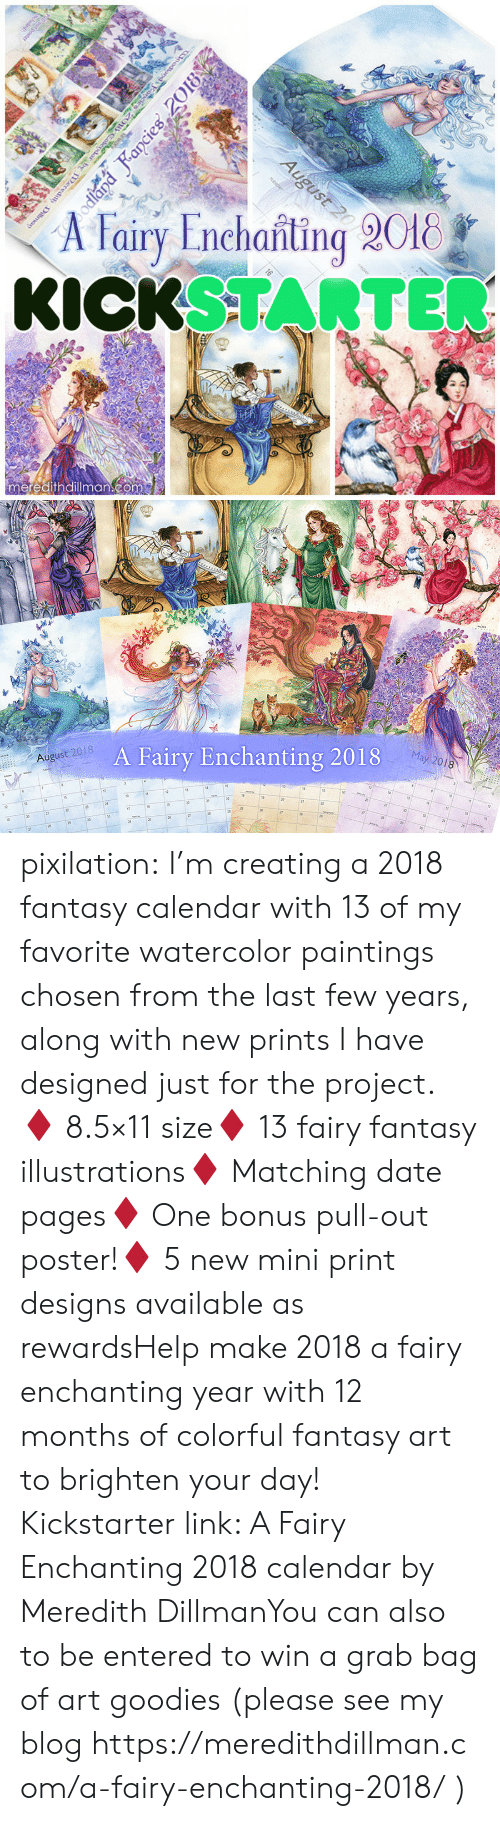 goodies: A Fairy Enchanting 2018  KICKSTARTE  meredithdillmancom   August 2018  A Fairy Enchanting 2018  May 2018  13  21 pixilation: I'm creating a 2018 fantasy calendar with 13 of my favorite watercolor paintings chosen from the last few years, along with new prints I have designed just for the project. ♦ 8.5×11 size♦ 13 fairy  fantasy illustrations♦ Matching date pages♦ One bonus pull-out poster!♦ 5 new mini print designs available as rewardsHelp make 2018 a fairy enchanting year with 12 months of colorful fantasy art to brighten your day! Kickstarter link: A Fairy Enchanting 2018 calendar by Meredith DillmanYou can also to be entered to win a grab bag of art goodies (please see my blog https://meredithdillman.com/a-fairy-enchanting-2018/ )